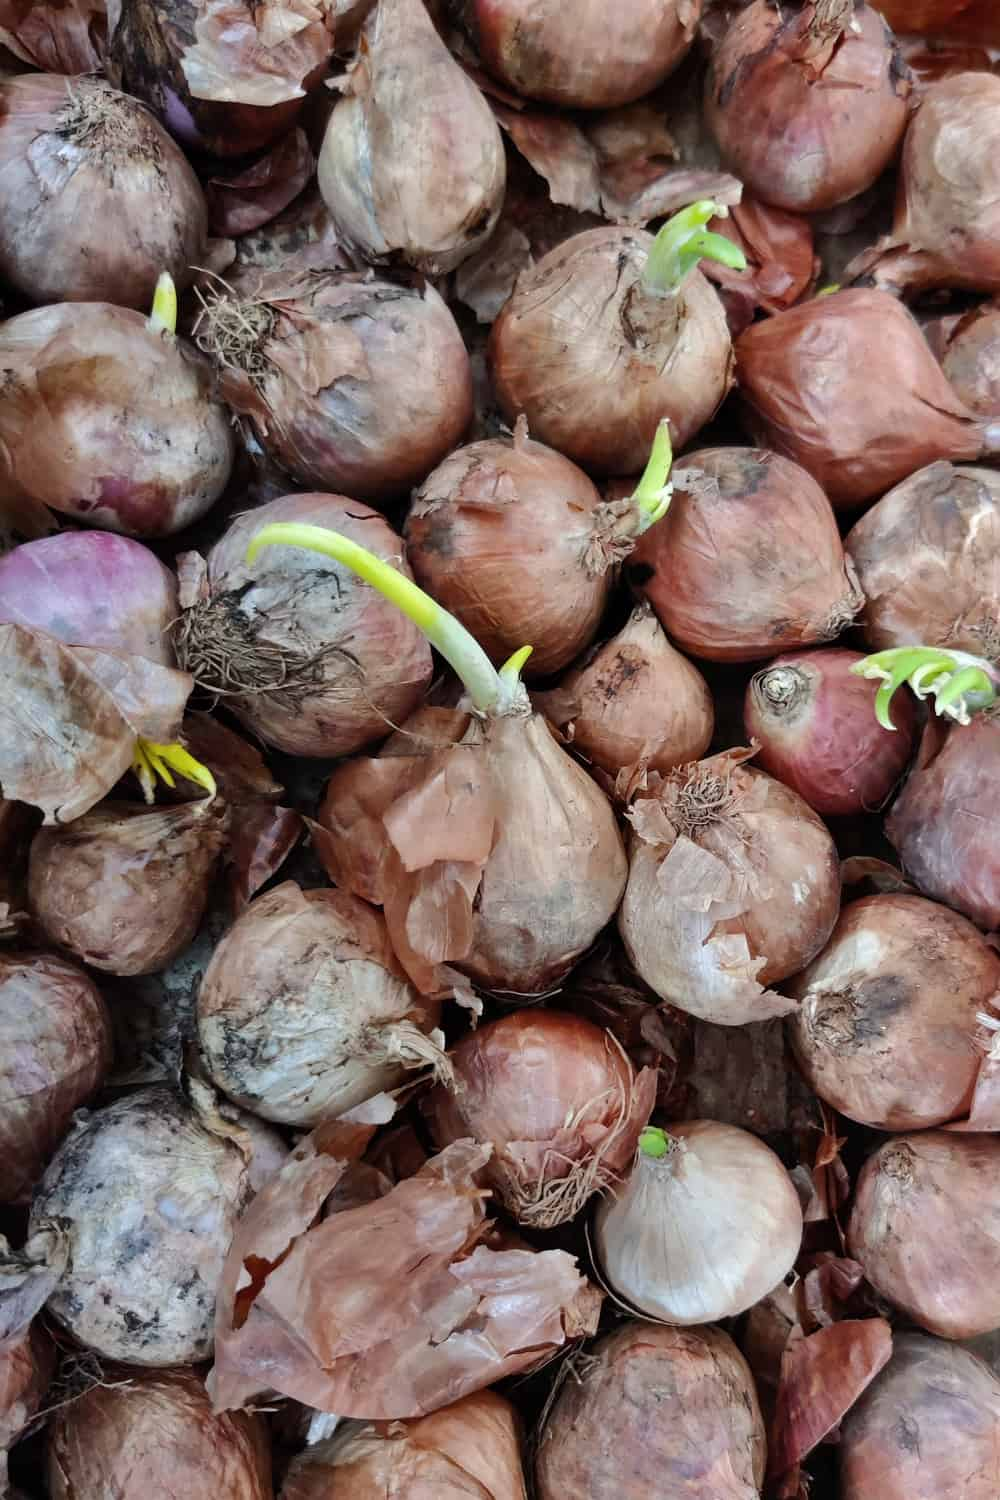 Top Tips To Tell If The Shallots Have Gone Bad